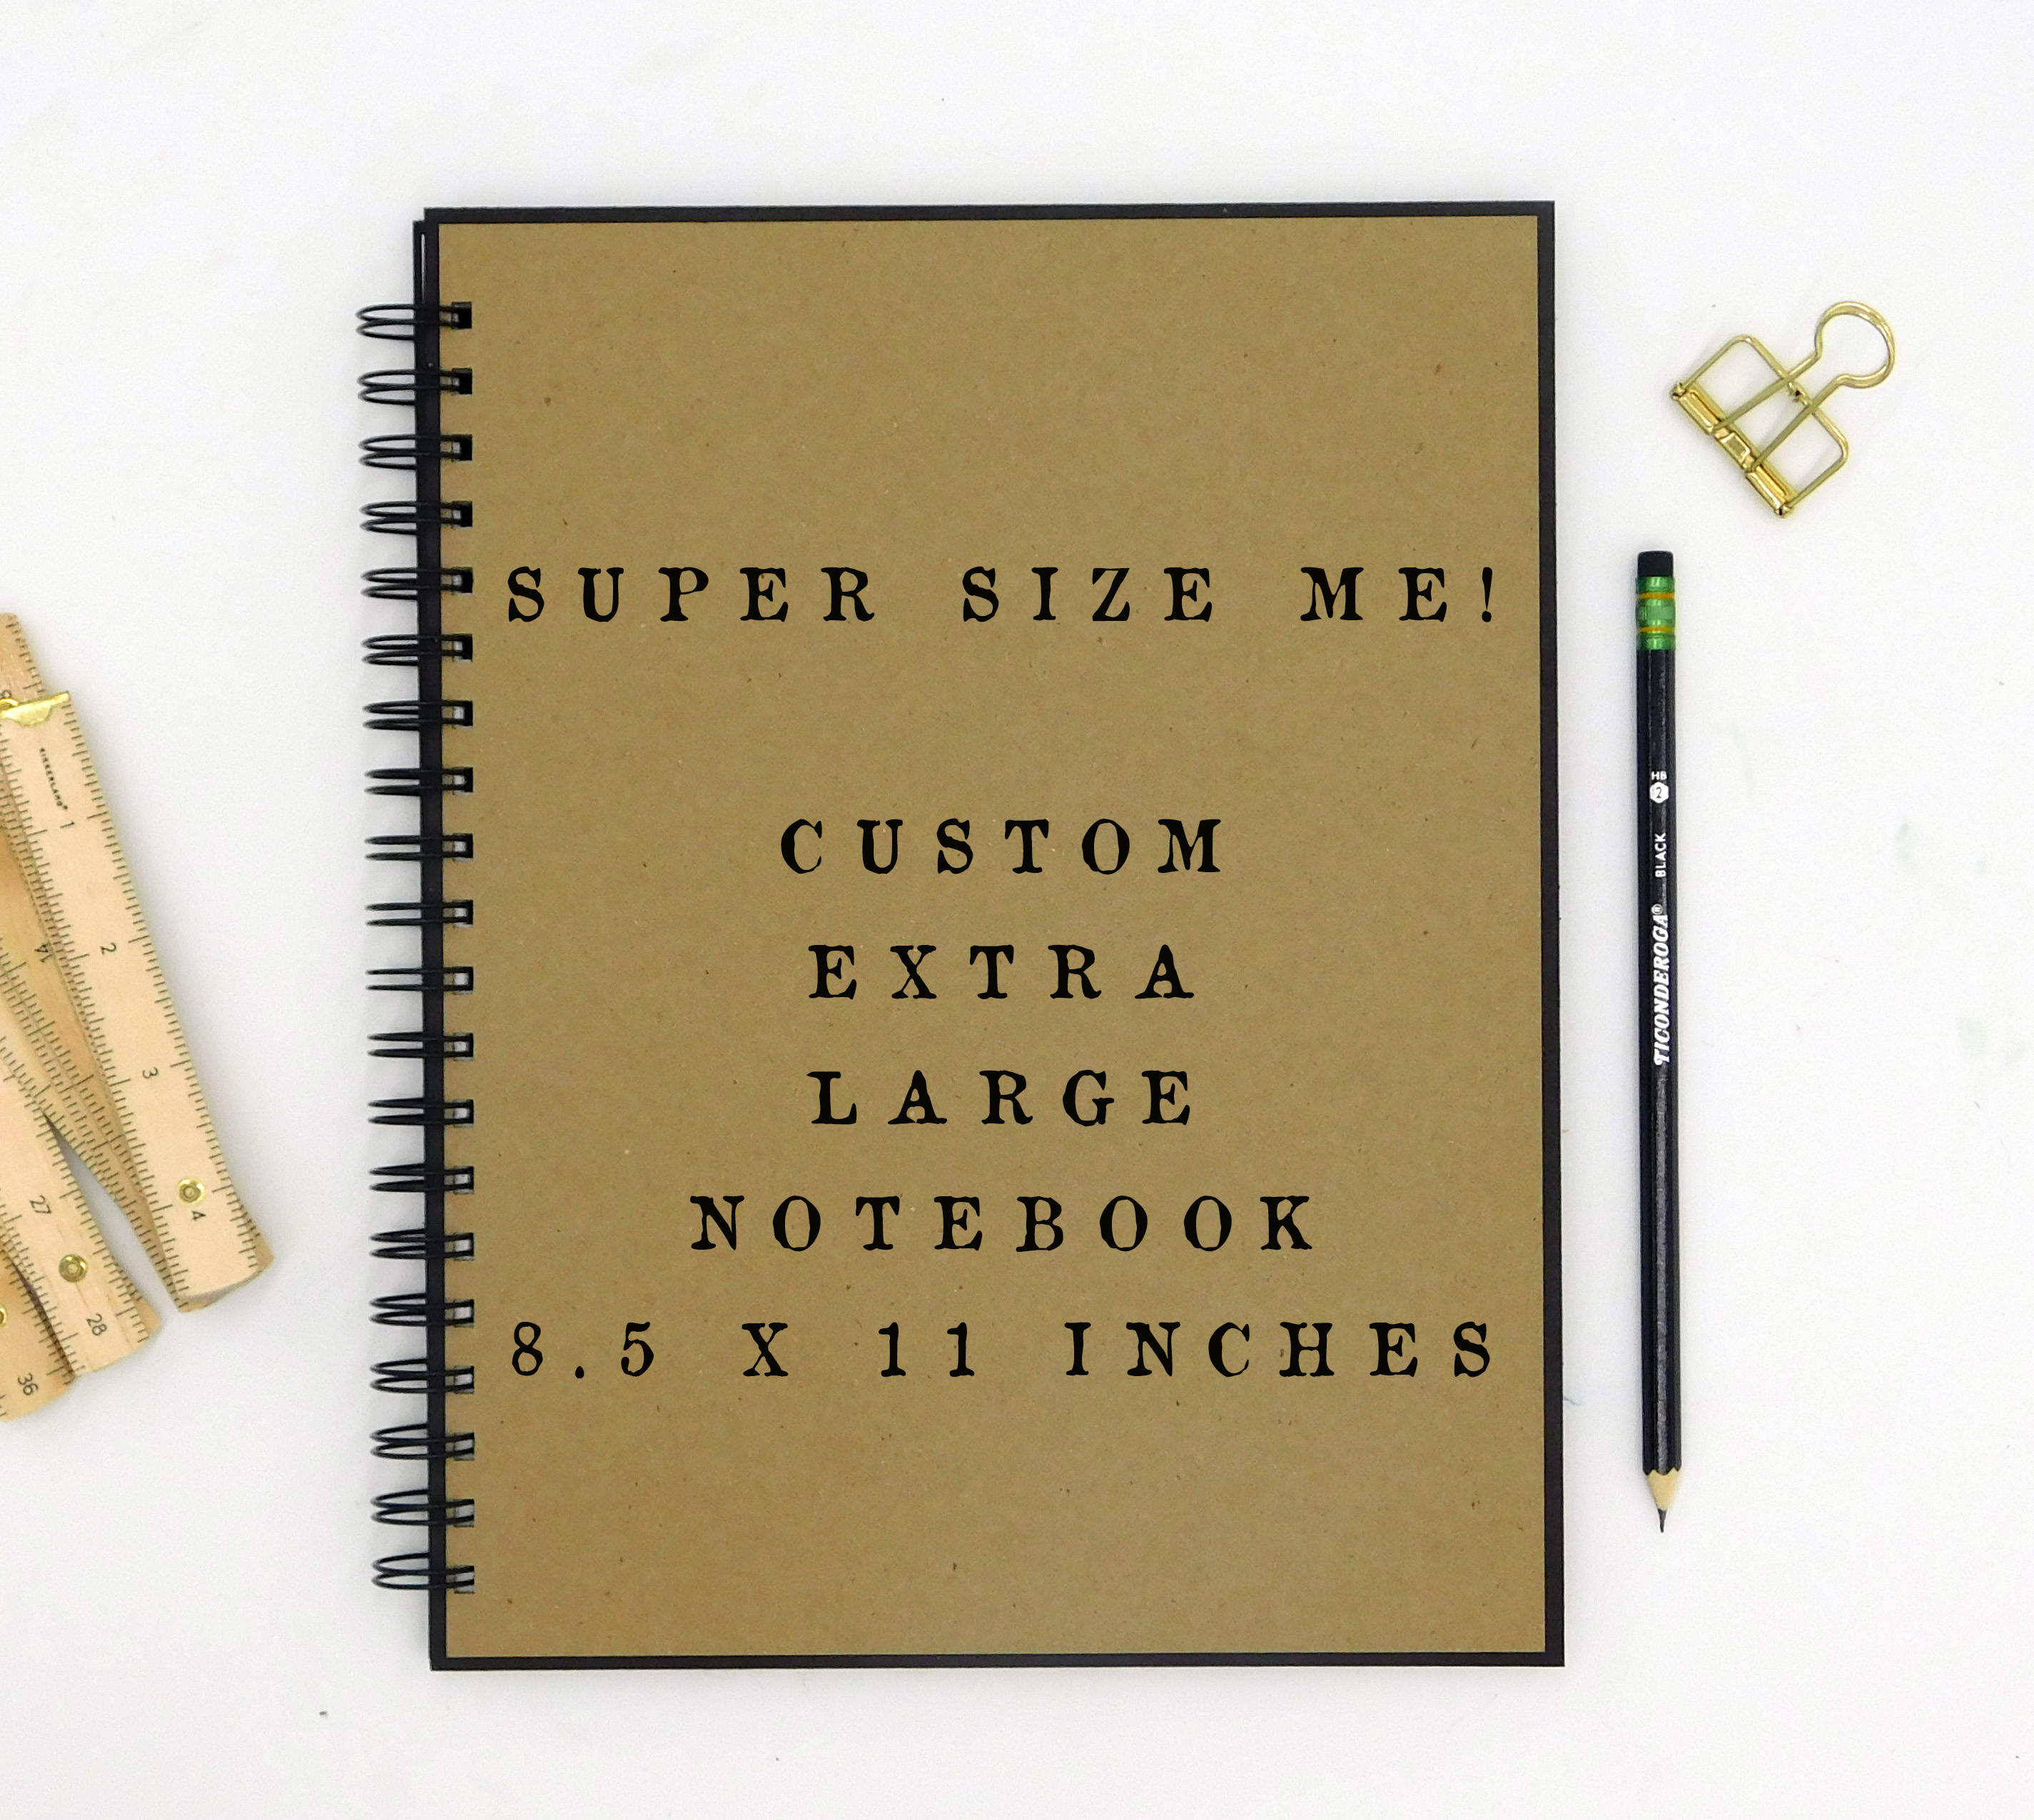 Custom Extra Large Notebook 8 5 X 11 Inches Large Journal Custom Journal Personalized Notebook Spiral Notebook Large Notebook